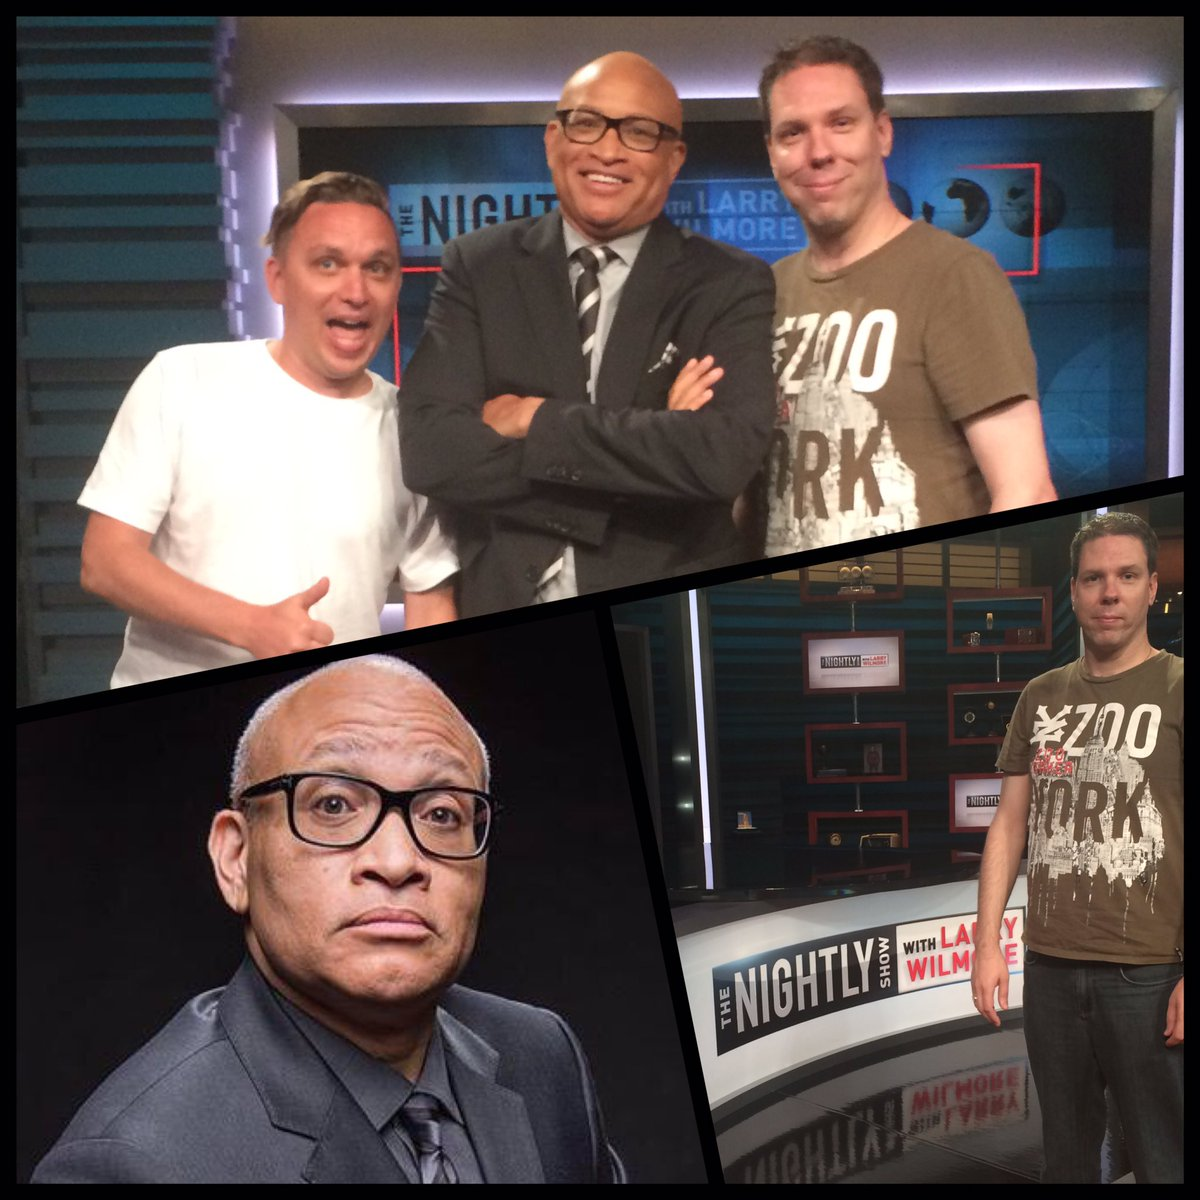 Thanks to @larrywilmore and the  @nightlyshow team for hosting us at tonight's amazing show! https://t.co/ZOQ28DL5yu